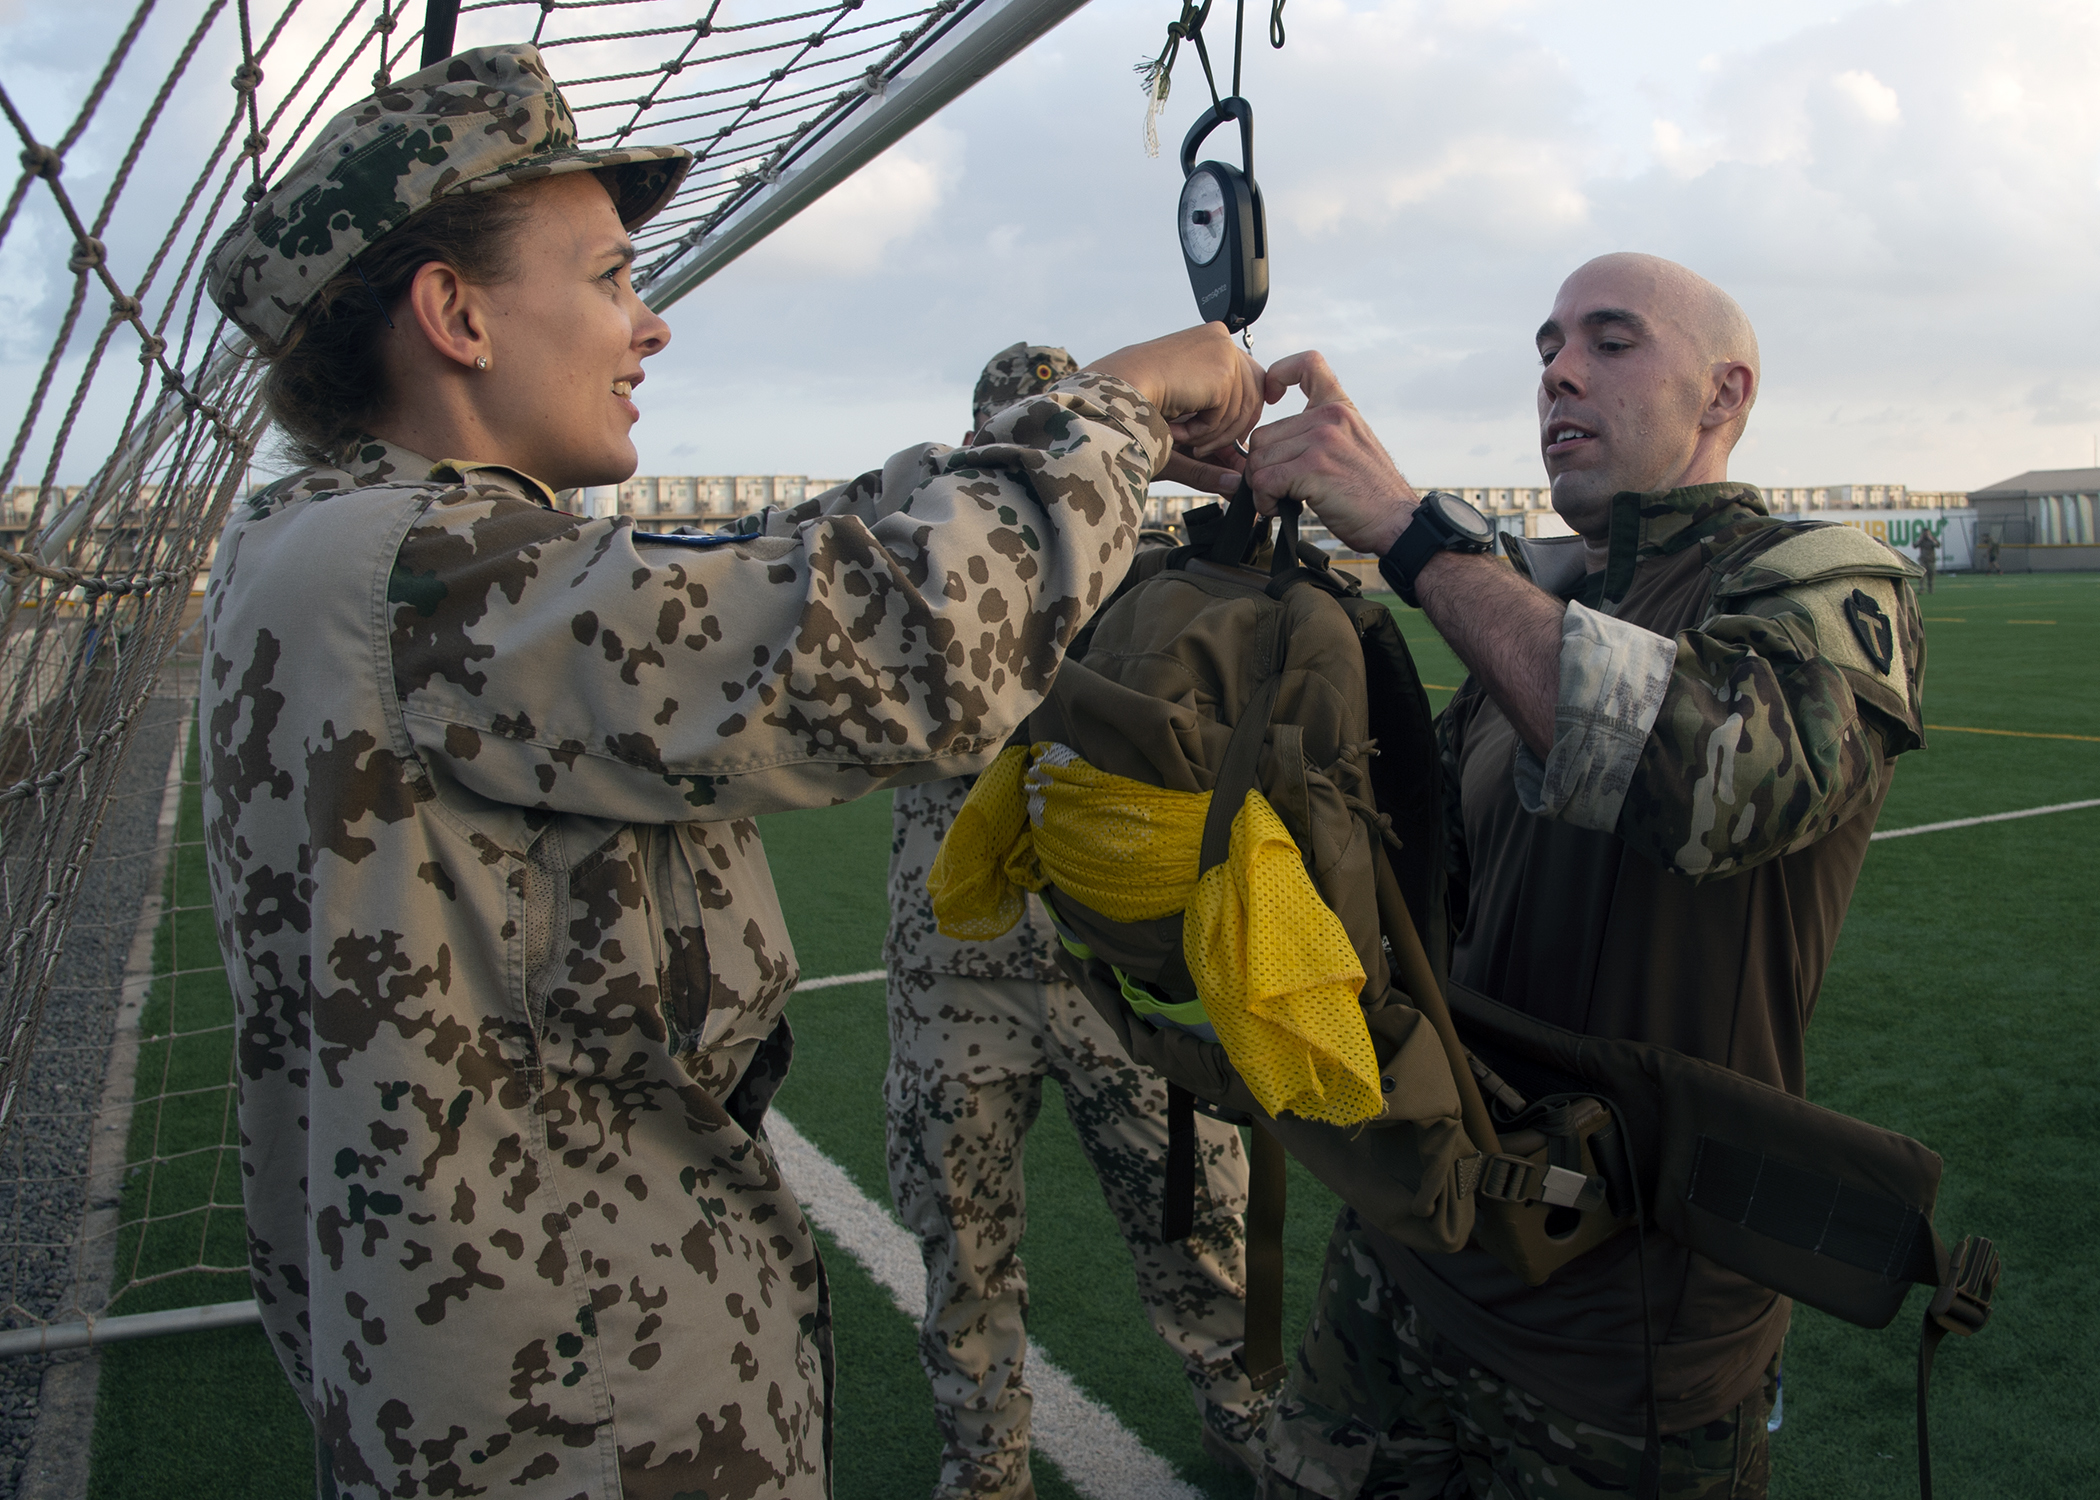 "U.S. Army Capt. Joseph Brunone, right, Headquarters and Headquarters Company, 1st Battalion, Task Force Alamo, Texas National Guard, assigned to Combined Joint Task Force-Horn of Africa (CJTF-HOA), Djibouti, has his backpack weighed by German Navy Lt. Cmdr. Katharina Wrede, after a ""ruckrun"" for the German Armed Forces Badge (GAFB) for Military Proficiency in Djibouti, Jan. 15, 2019. The GAFB is awarded to and worn by German service members of all ranks. Allied service members may also be awarded the badge, subject to their nations' uniform regulations. During the ""ruckrun"", backpacks are required to weight at or more than 33 pounds. (U.S. Navy photo by Mass Communication Specialist 1st Class Nick Scott)"